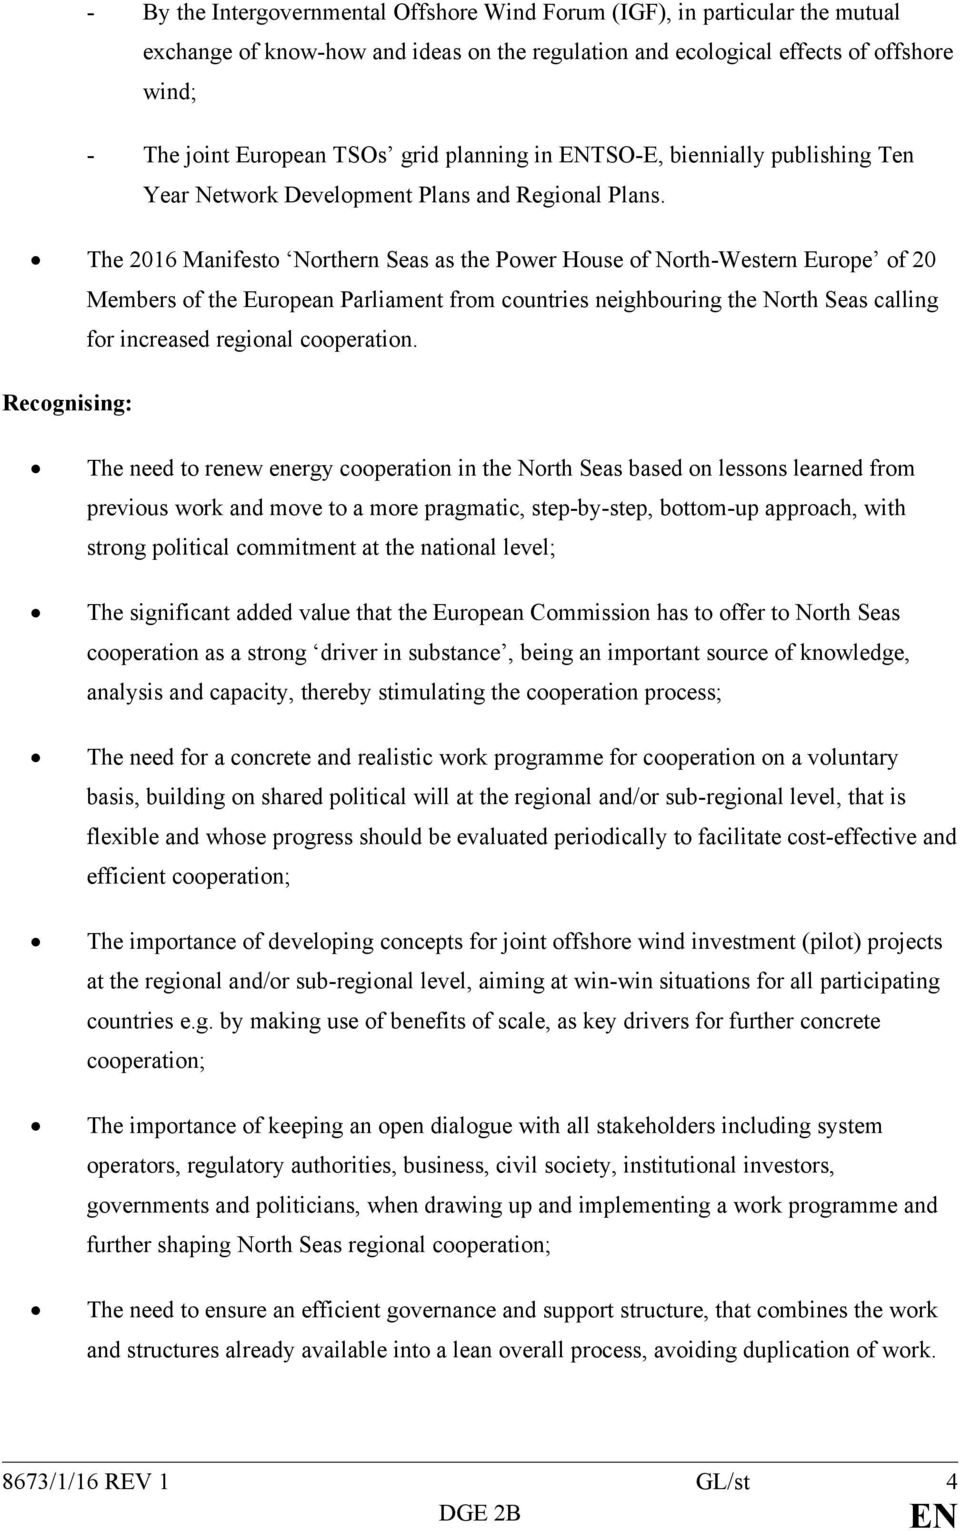 The 2016 Manifesto Northern Seas as the Power House of North-Western Europe of 20 Members of the European Parliament from countries neighbouring the North Seas calling for increased regional